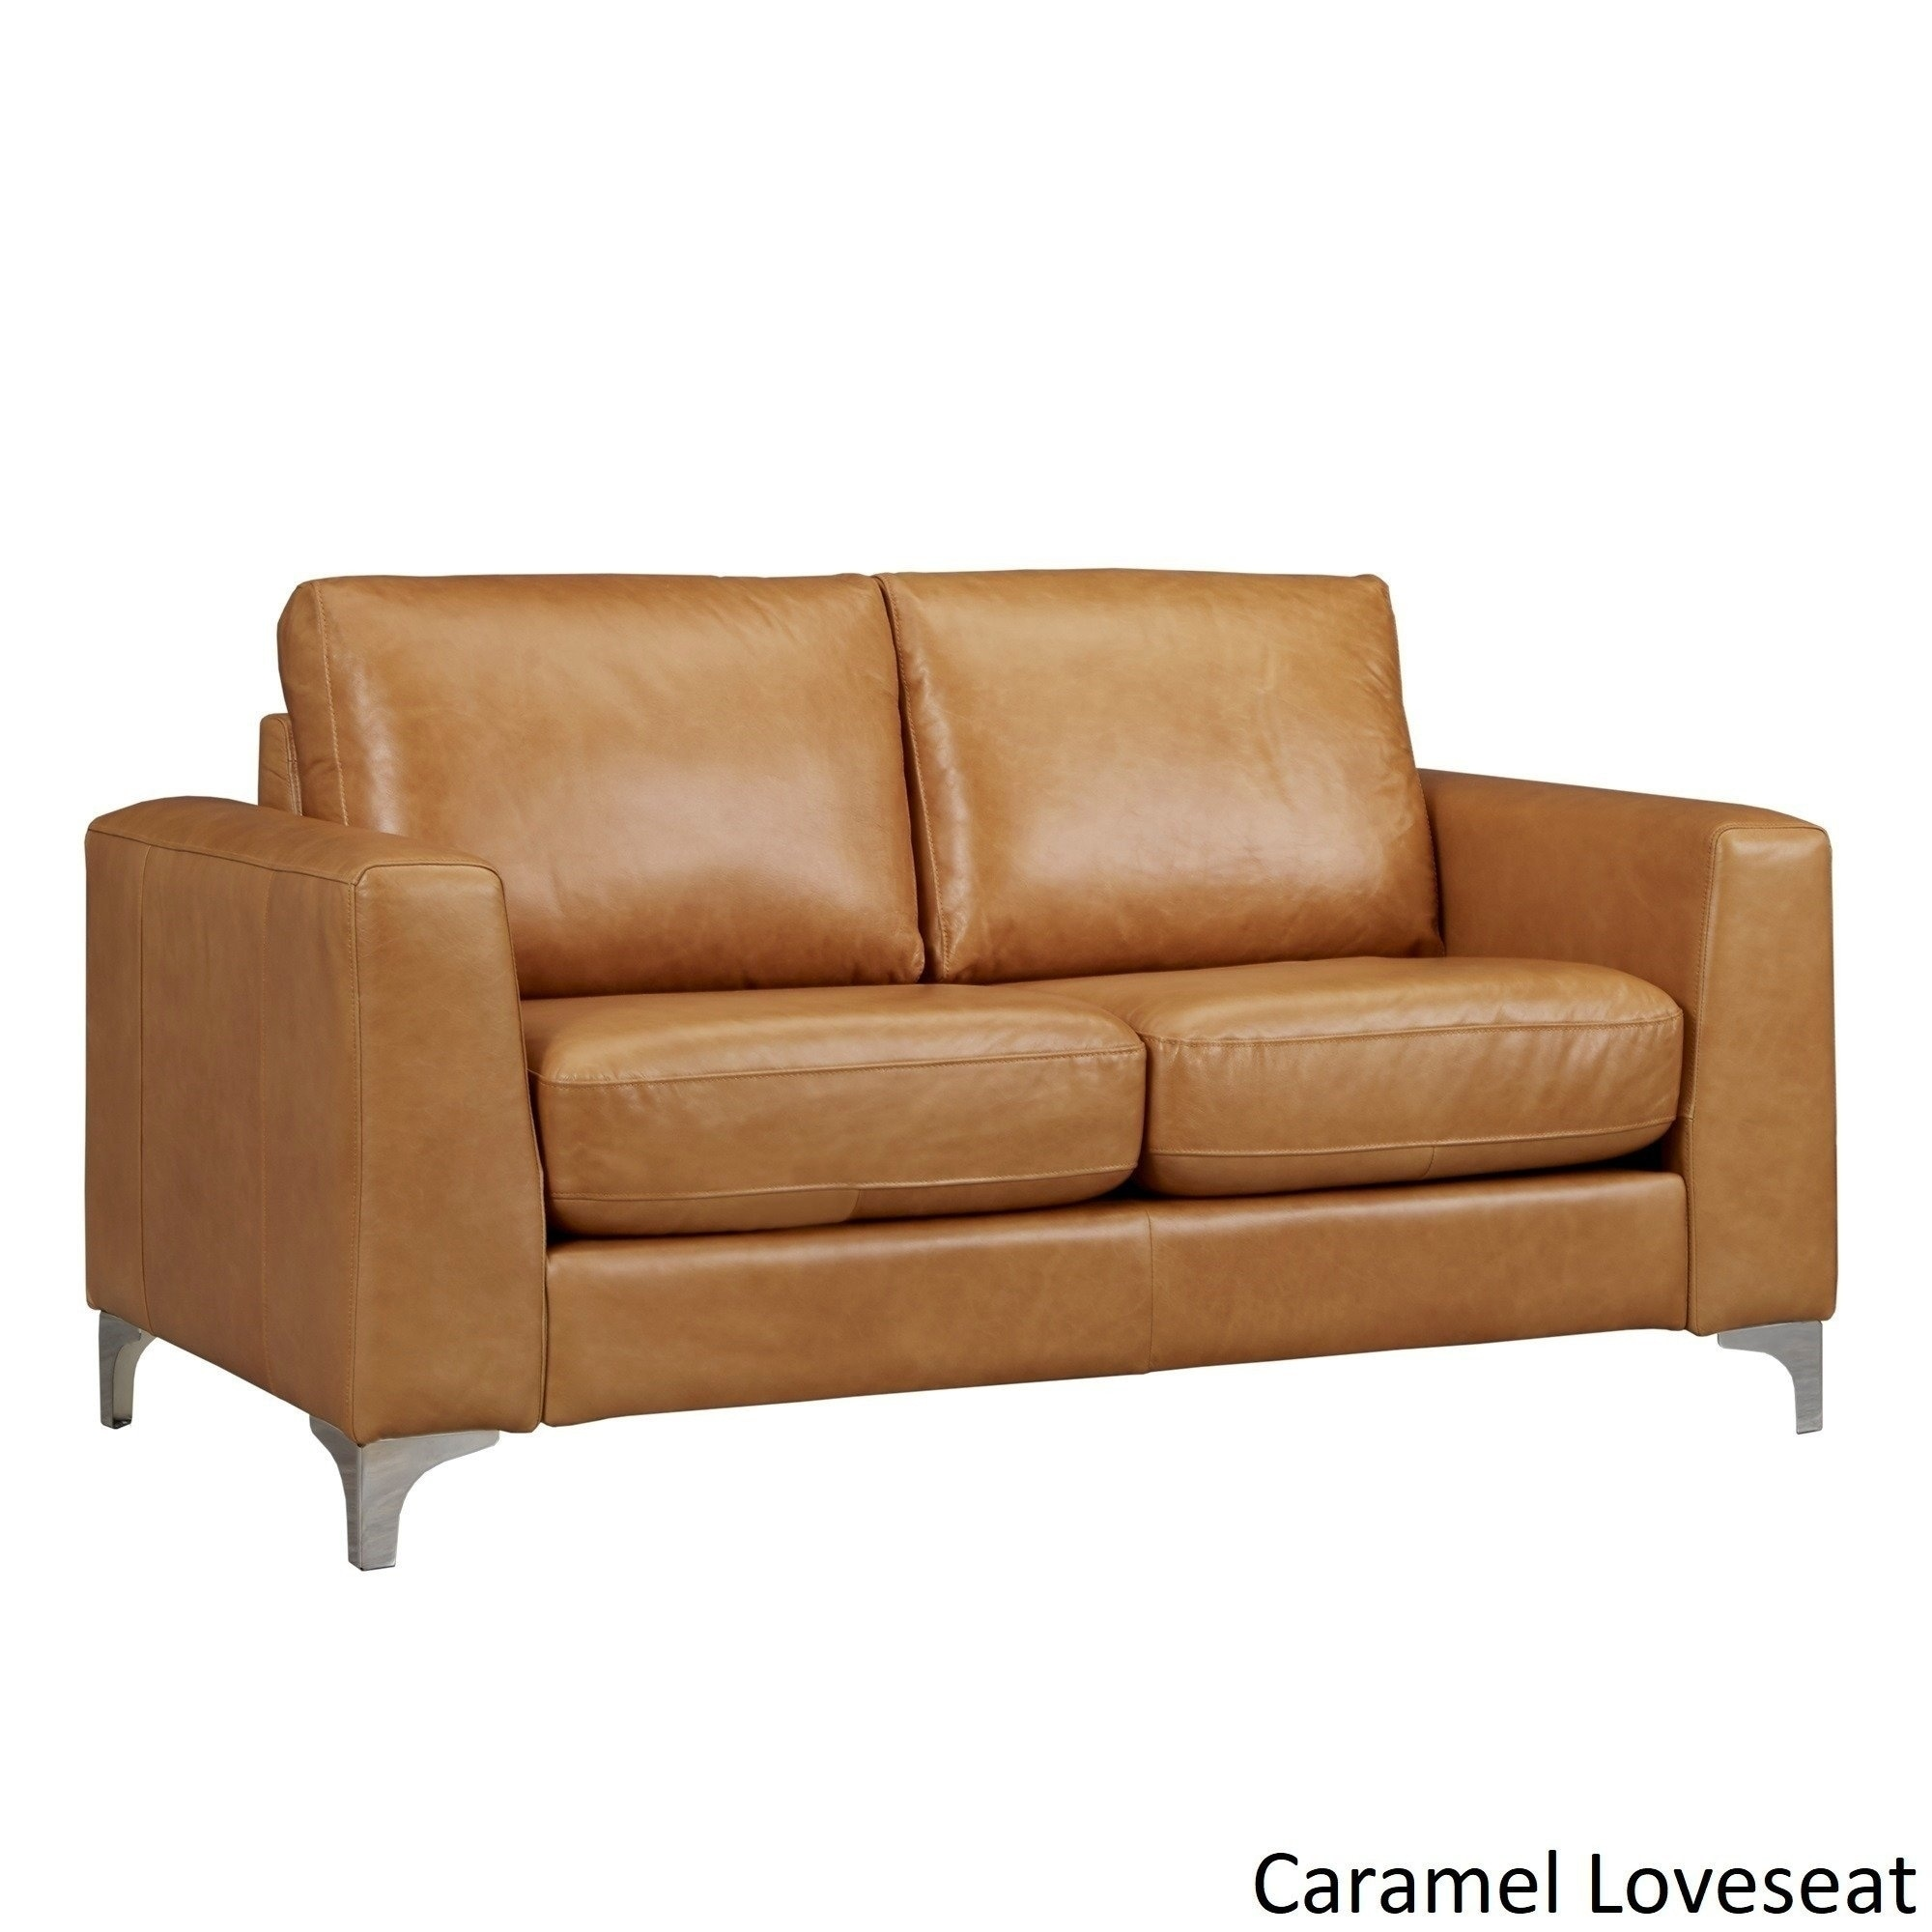 Leather Couch Beige